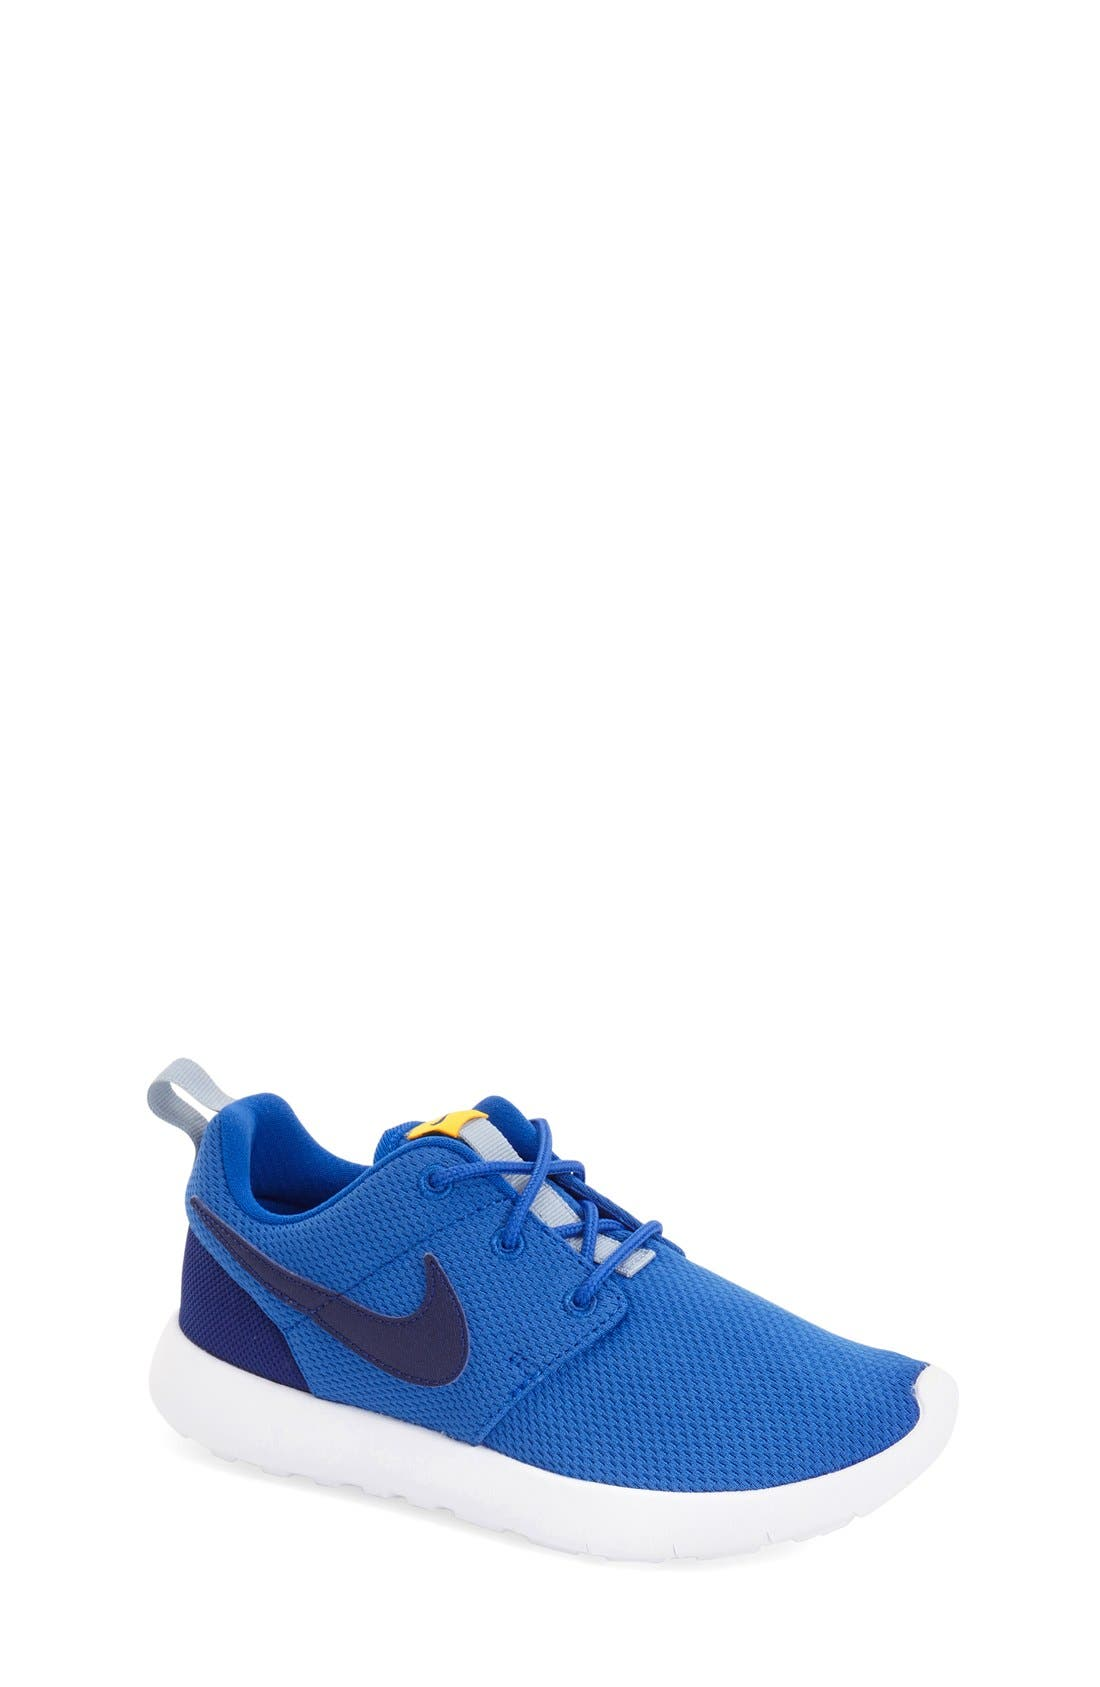 Roshe Run Sneaker,                             Main thumbnail 16, color,